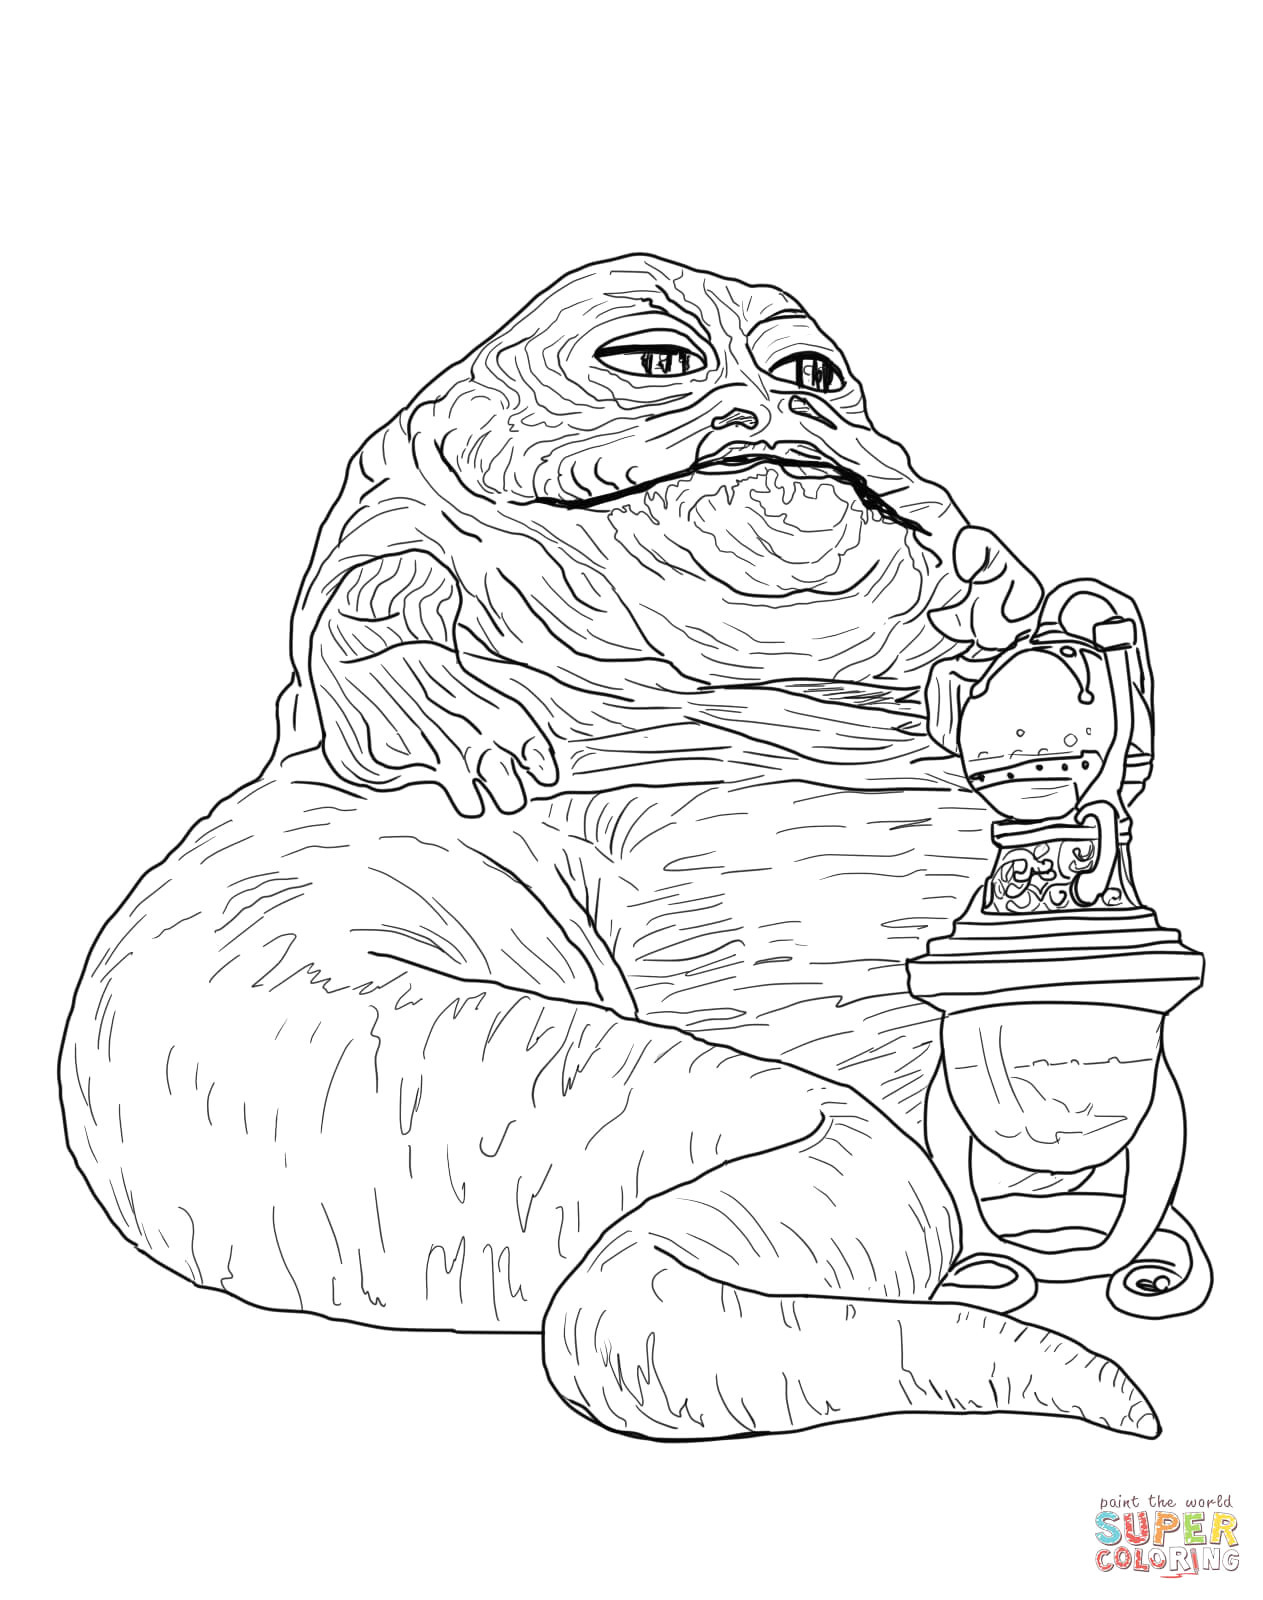 Stormtrooper Coloring Page Star Wars Stormtrooper Coloring Pages Printable Disney Jabba The